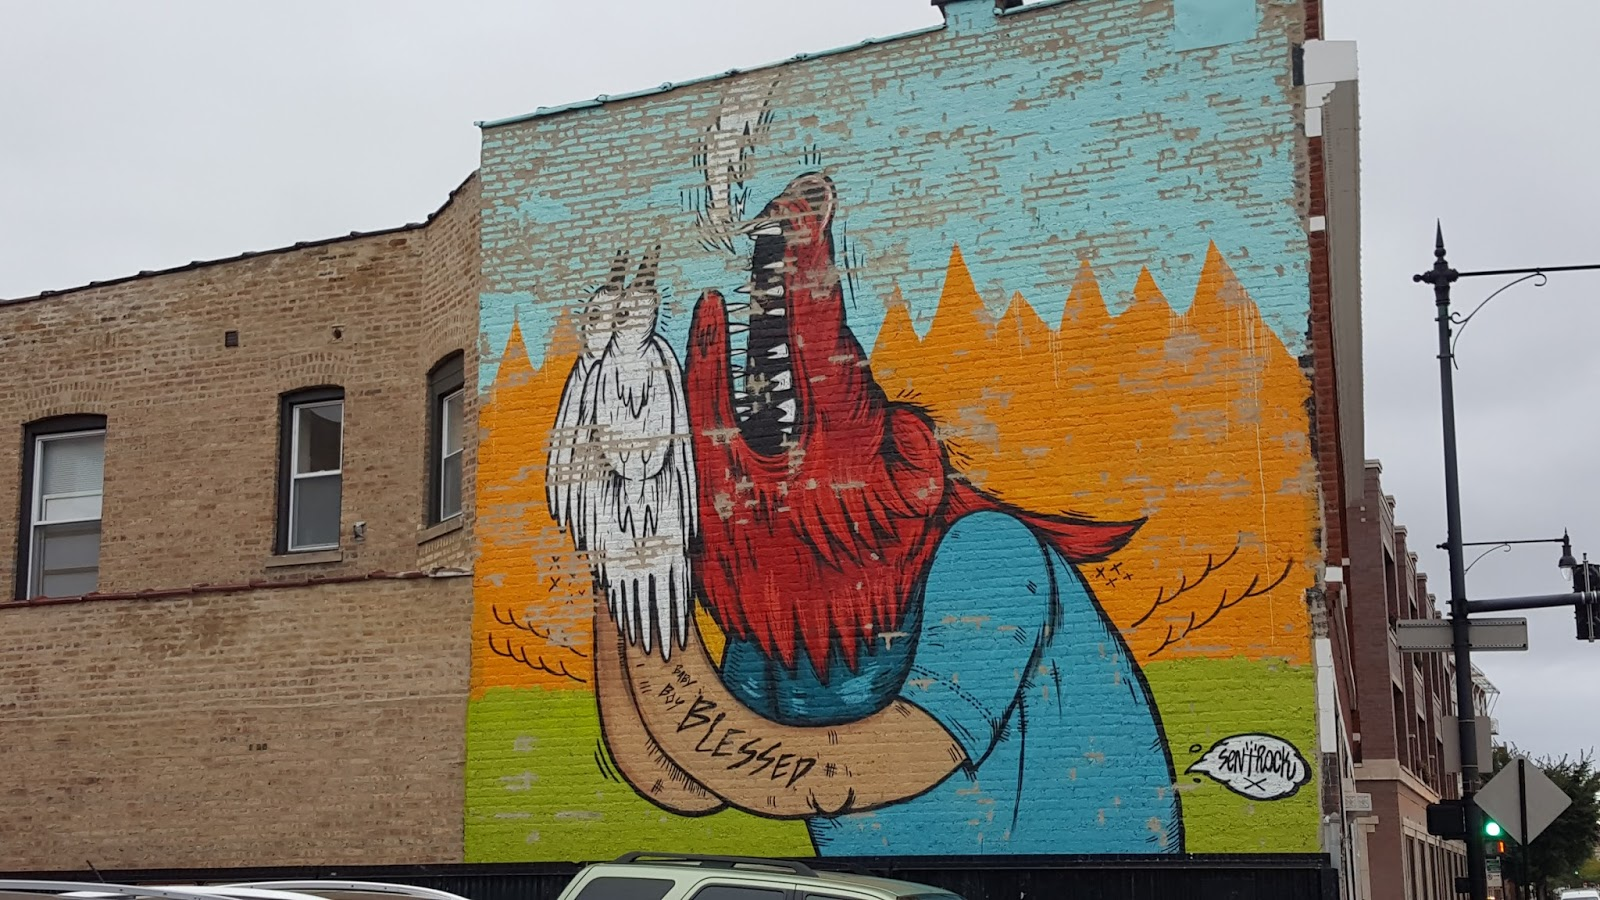 The Chicago Real Estate Local: UPDATE: Mural on North Clark Street near West Lawrence in Uptown